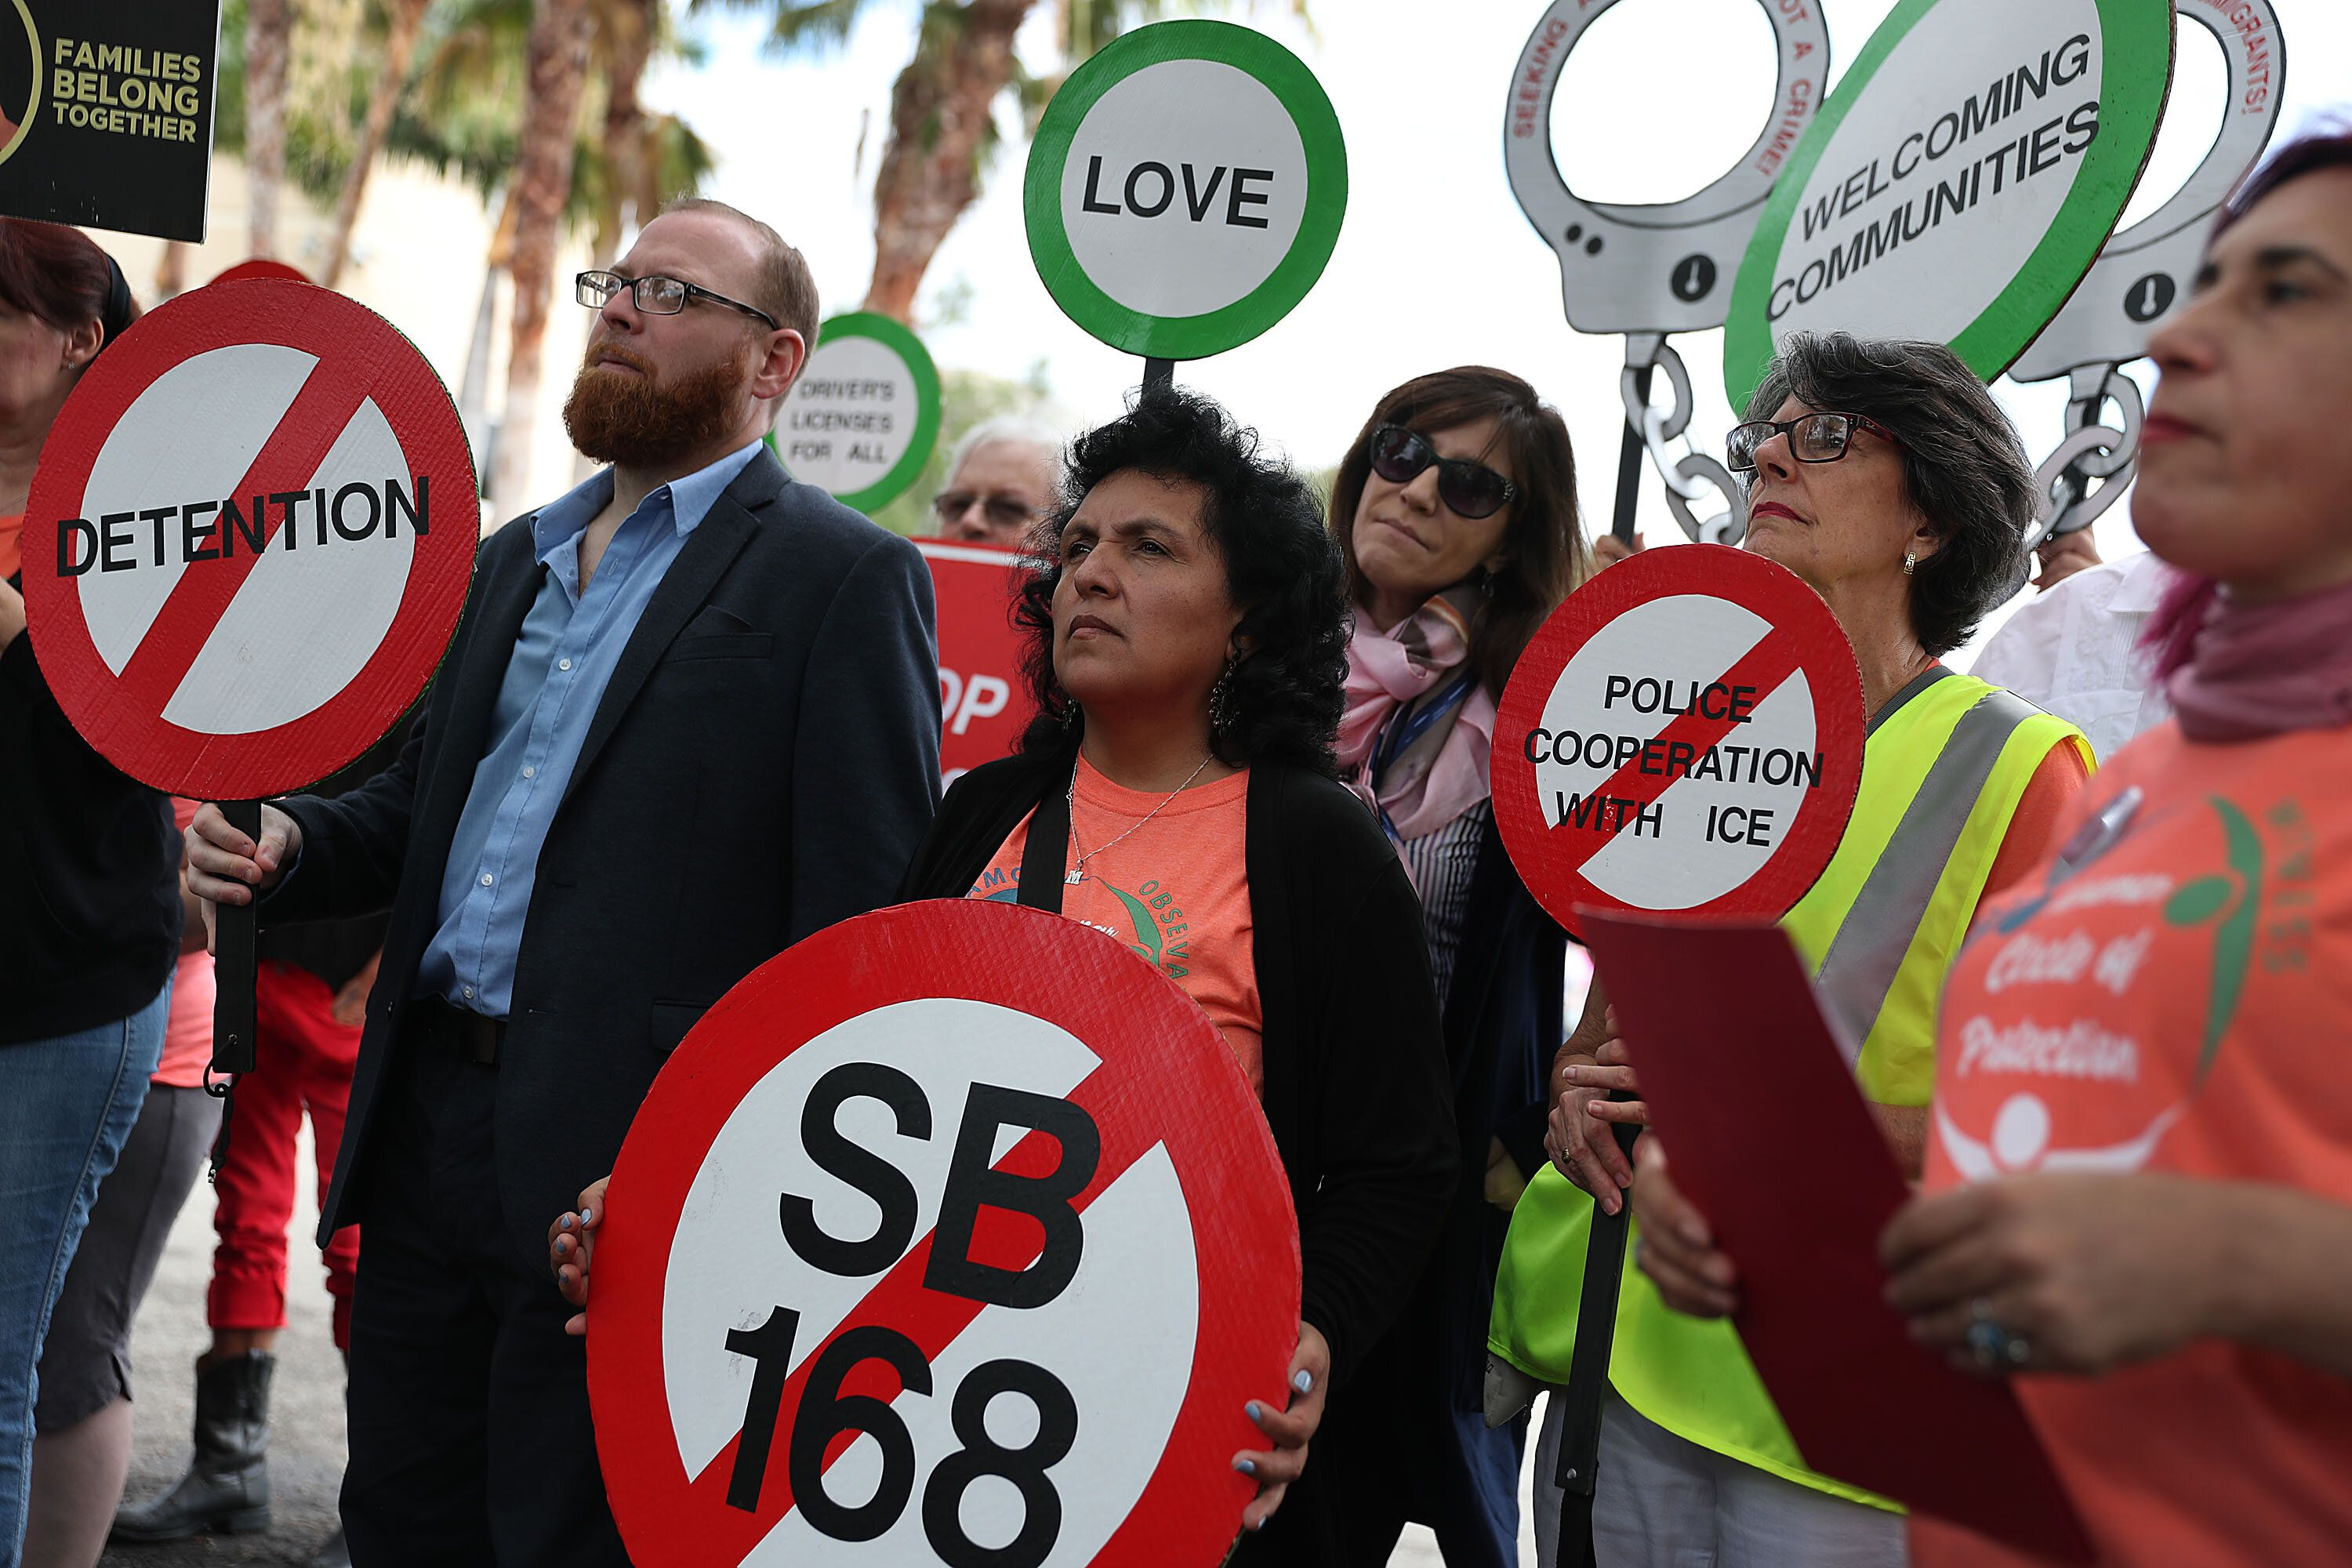 "MIRAMAR, FLORIDA - APRIL 10:  Yaquelin Lopez (C) stands with other activist during a press conference being held across the street from a U.S. Immigration and Customs Enforcement (ICE) office to announce a travel alert for the state of Florida on April 10, 2019 in Miramar, Florida. The travel alert launched this week is in response to two ""anti-sanctuary"" bills (SB 168 and HB 527) currently moving through the Florida state Legislature. The alert is meant to inform people visiting Florida of the possible increased likelihood of racial profiling, unjust detention, and possible deportation if the bills were to be enacted. (Photo by Joe Raedle/Getty Images)"